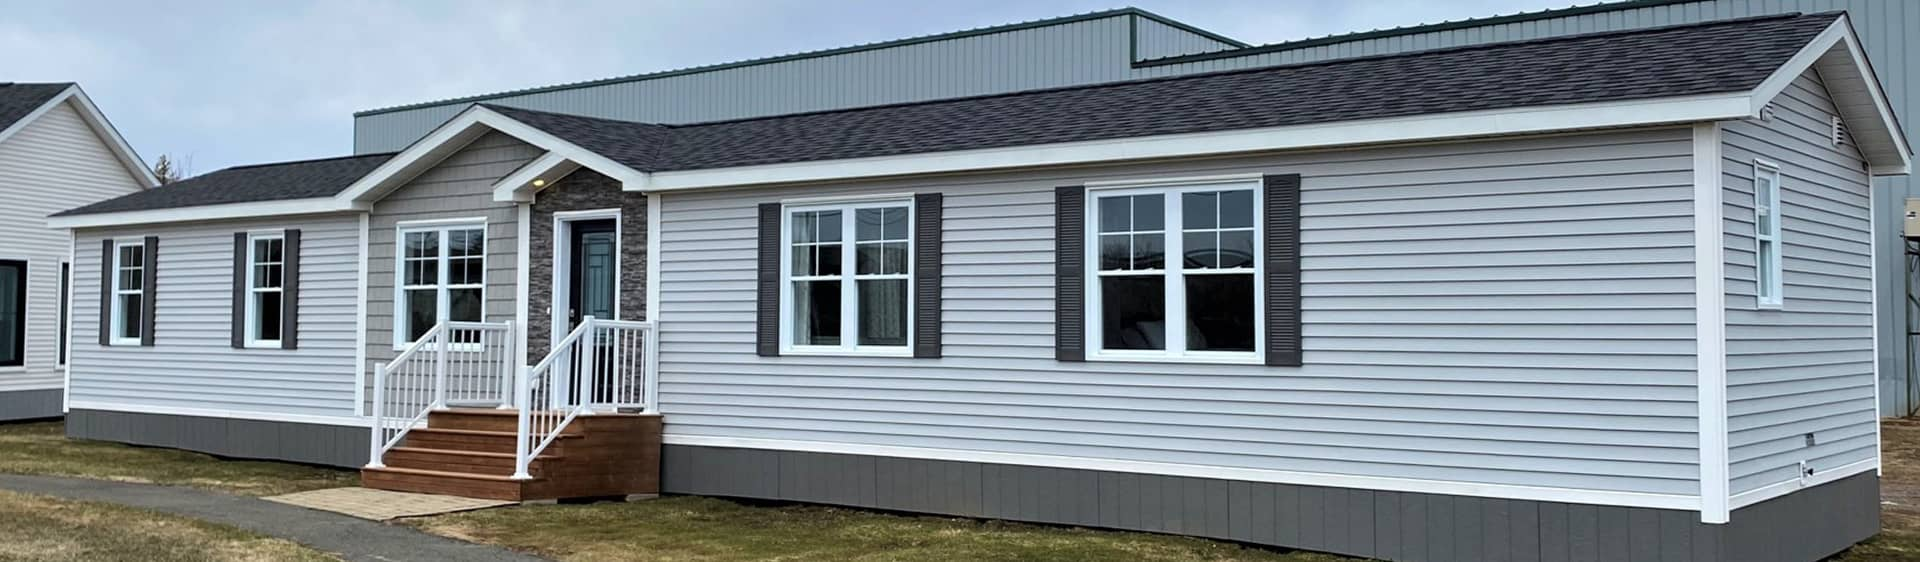 Stephenville Mini Home Builder, Mini Home Financing and Home Mortgages